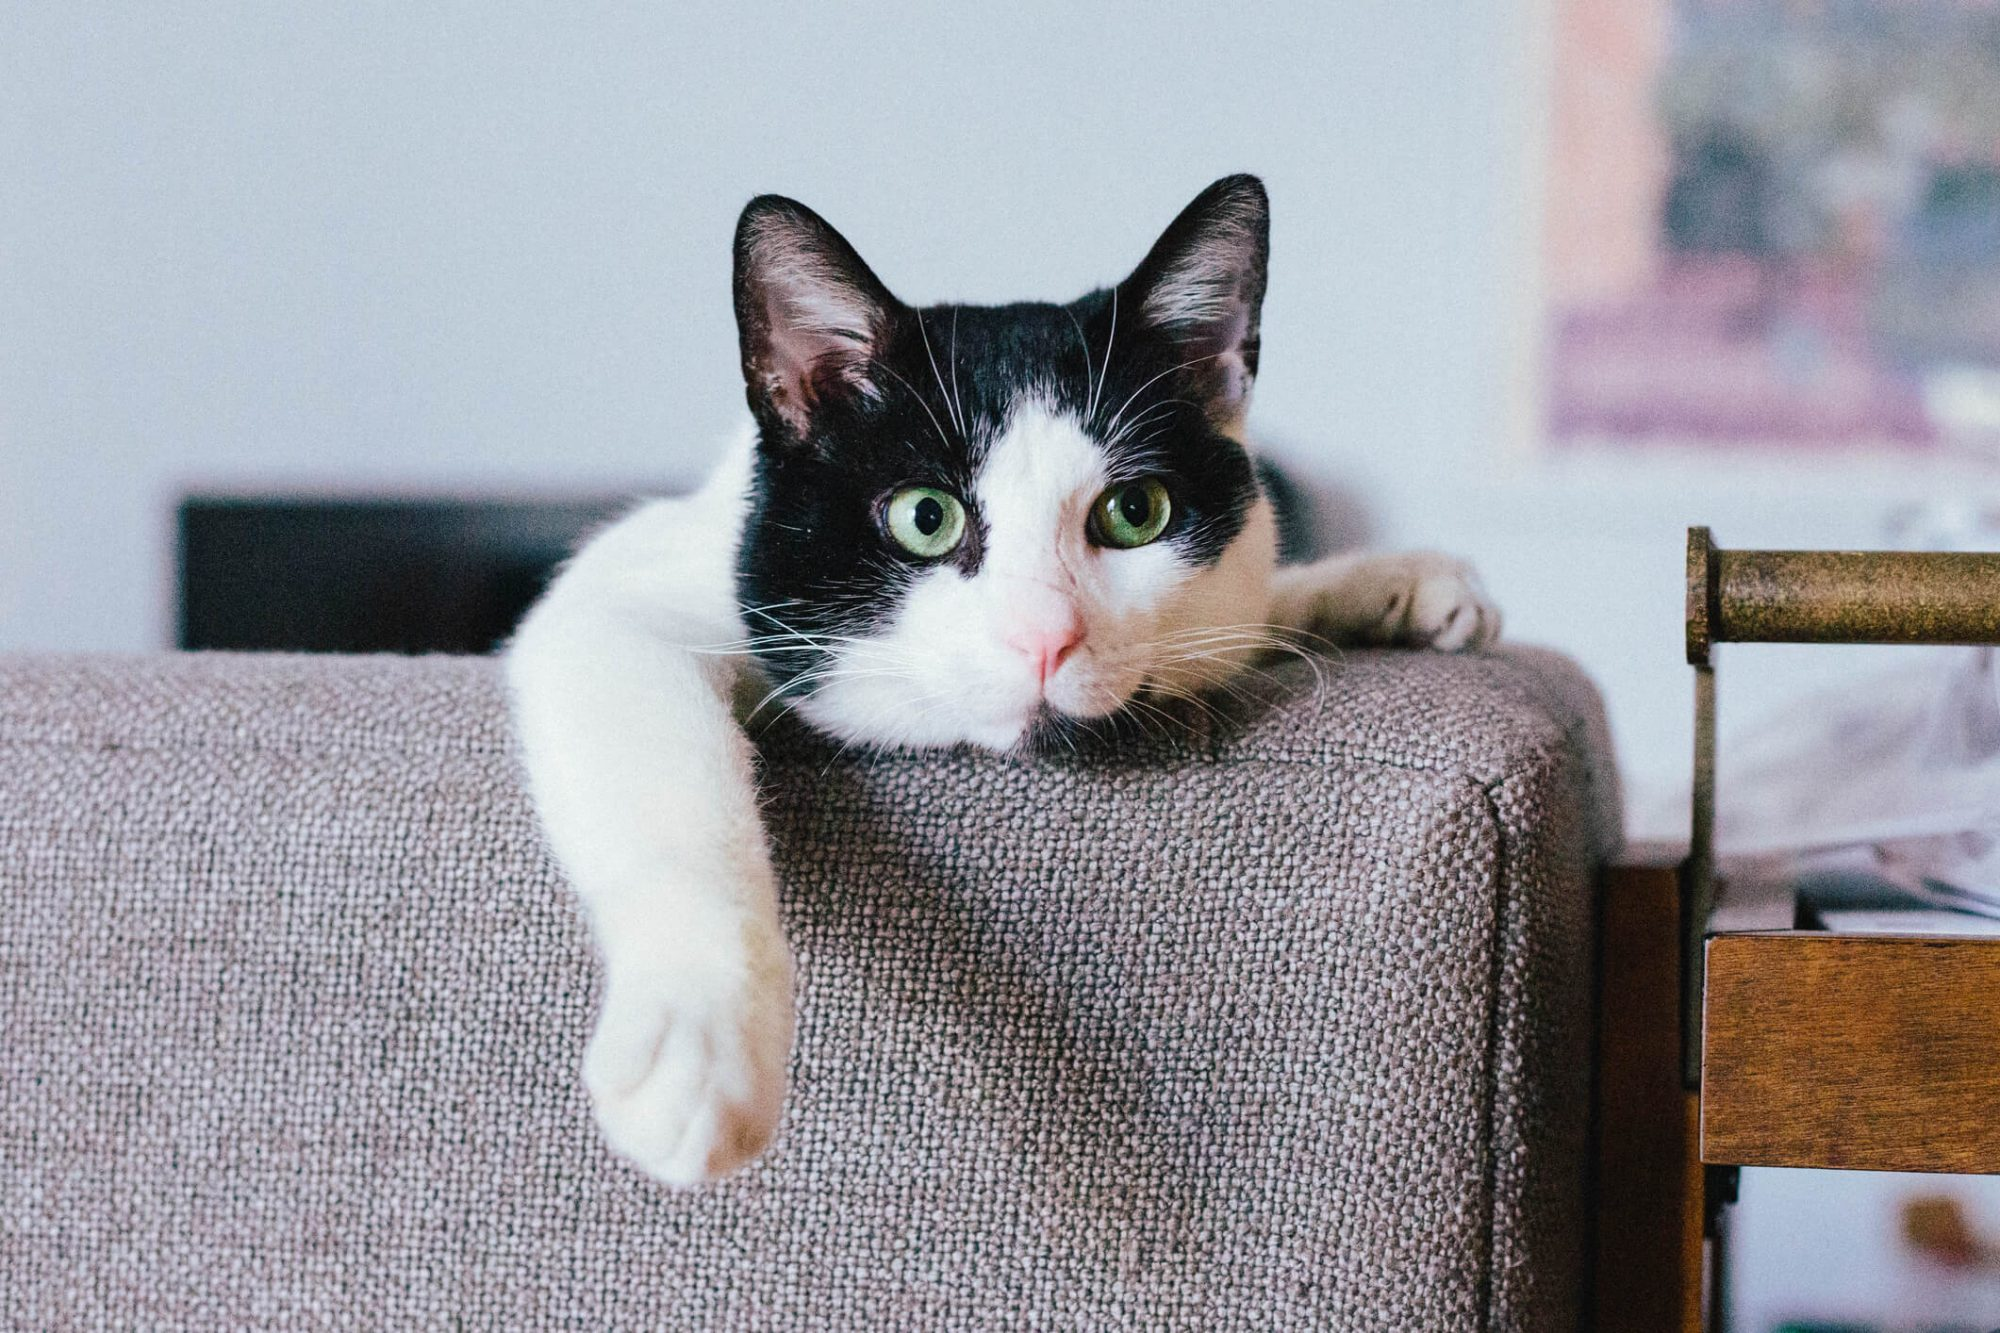 cat laying on couch looking at camera